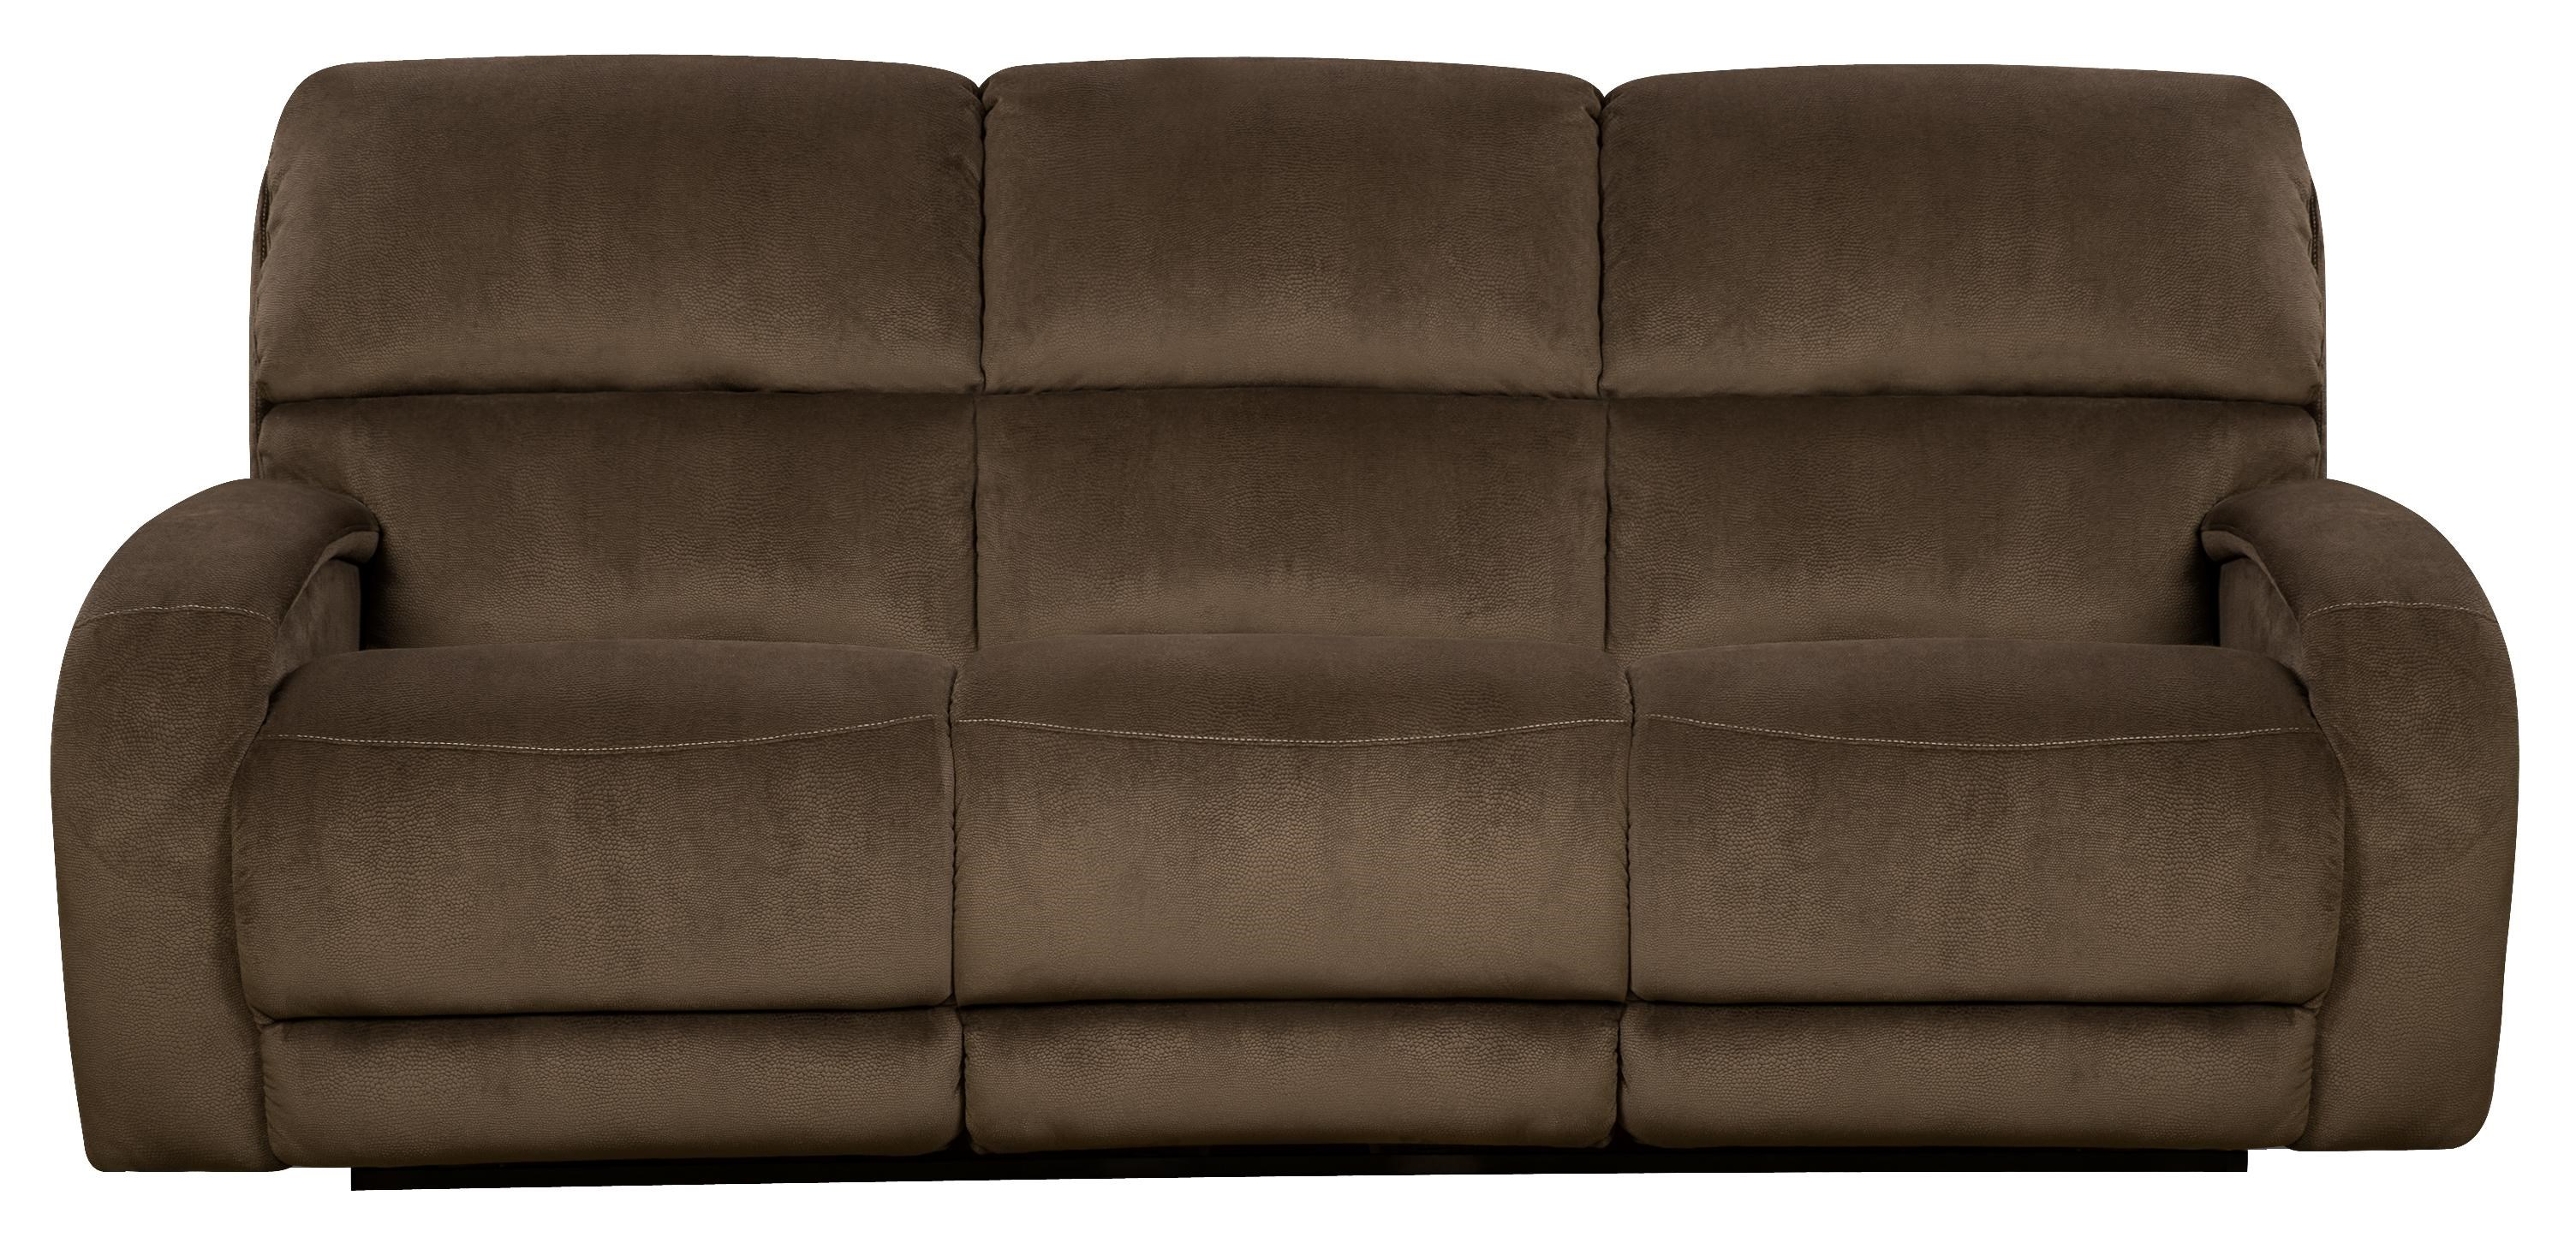 ... Southern Motion Fandango 884 Reclining Sofa. Sofa Shown May Not Represent Exact Features Indicated  sc 1 st  Coconis Furniture & Southern Motion Fandango 884 Reclining Sofa with Casual Style for ... islam-shia.org